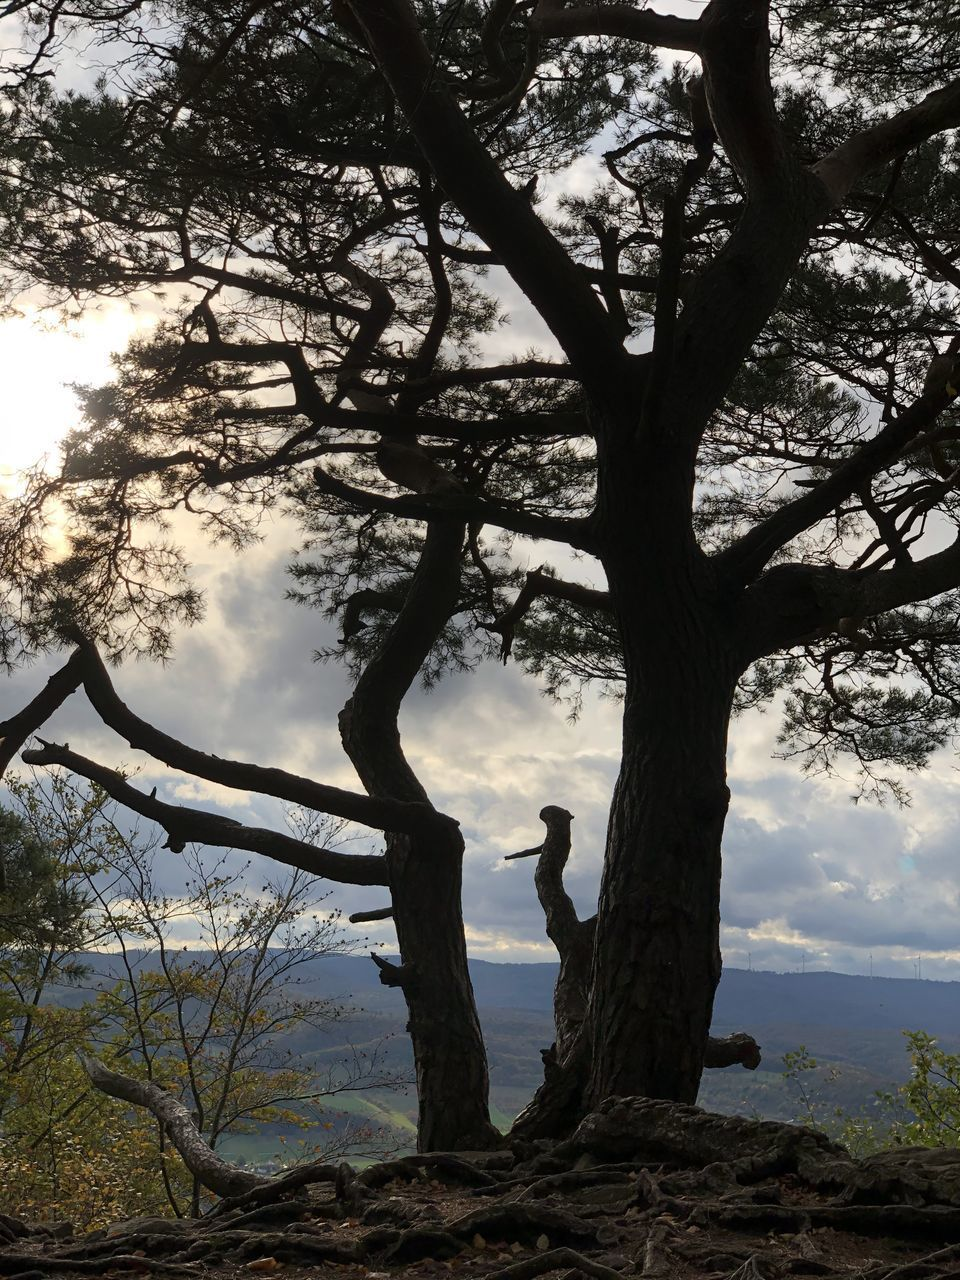 tree, plant, sky, tree trunk, trunk, beauty in nature, cloud - sky, branch, nature, tranquility, growth, scenics - nature, tranquil scene, outdoors, day, land, low angle view, leisure activity, silhouette, non-urban scene